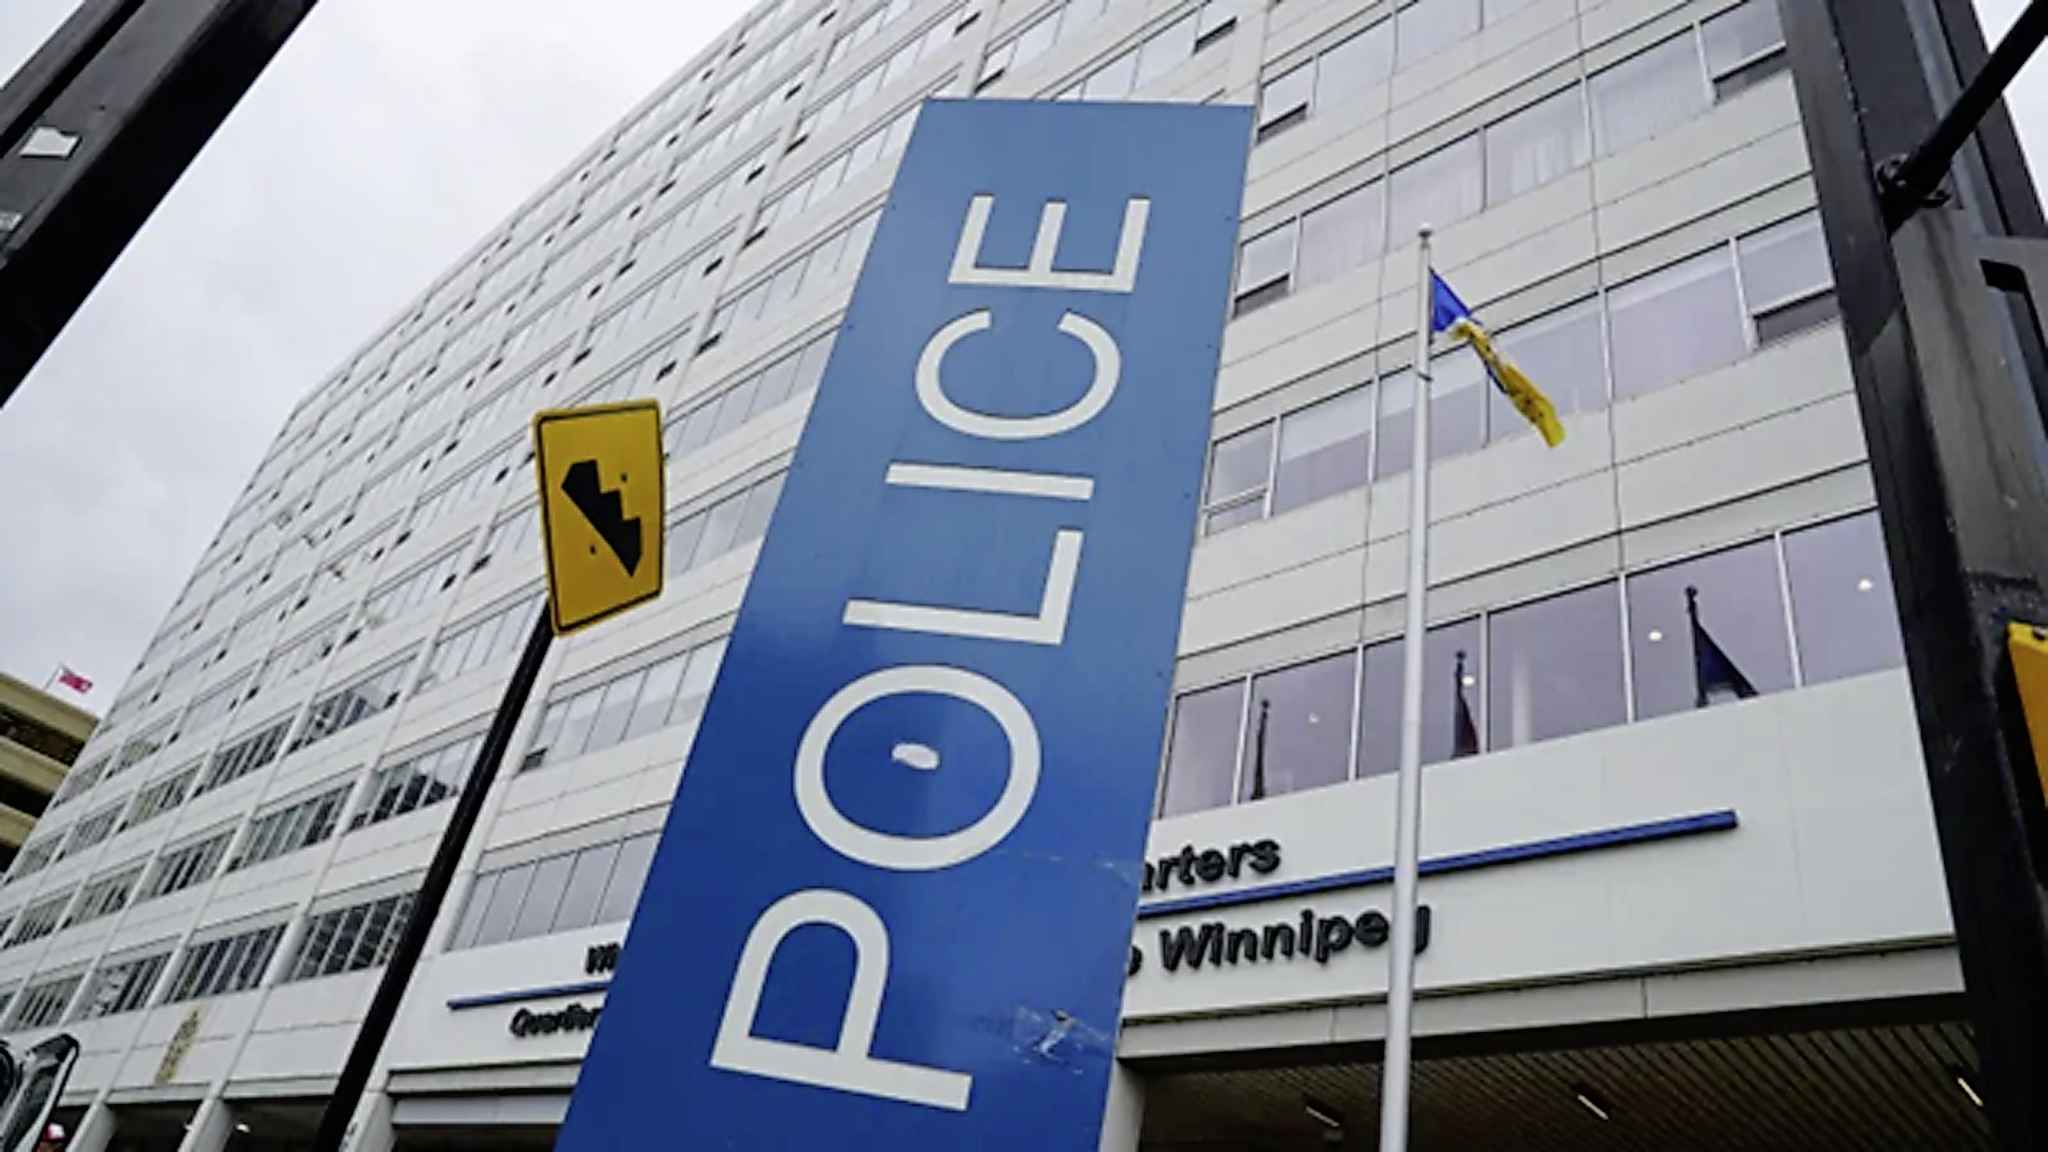 Documents obtained by CBC News show Mounties recommended laying 'criminal charges relating to financial crimes' in connection with the construction of the downtown Winnipeg police headquarters, with an estimated value of over $33 million. (Jaison Empson / CBC)